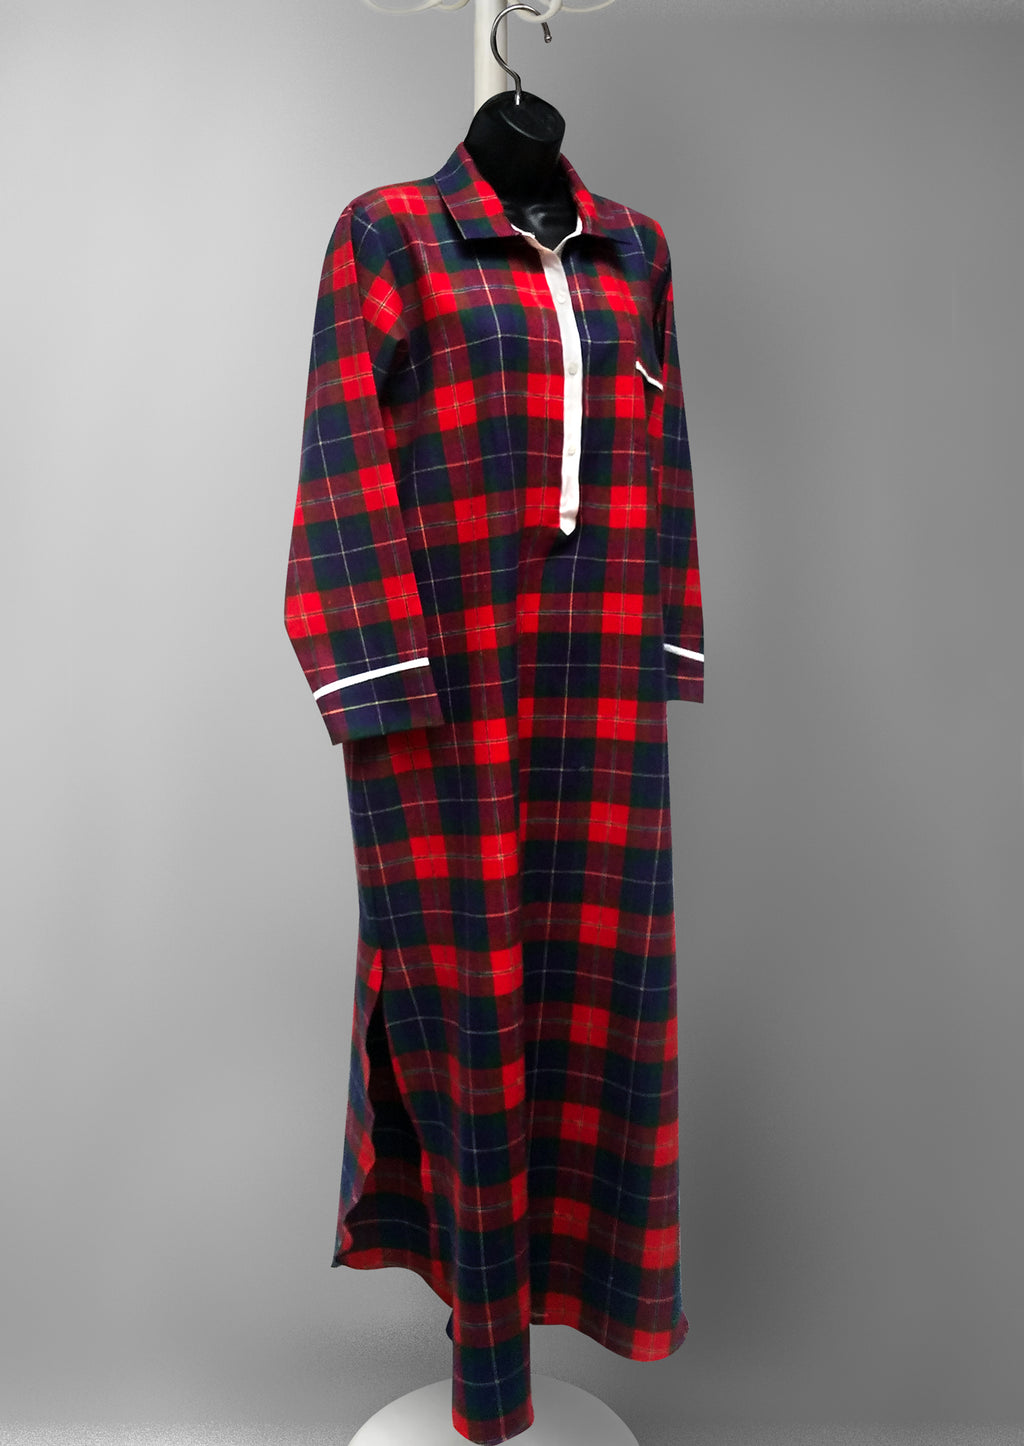 39904 Flannel printed nightshirt  -final sale-no returns